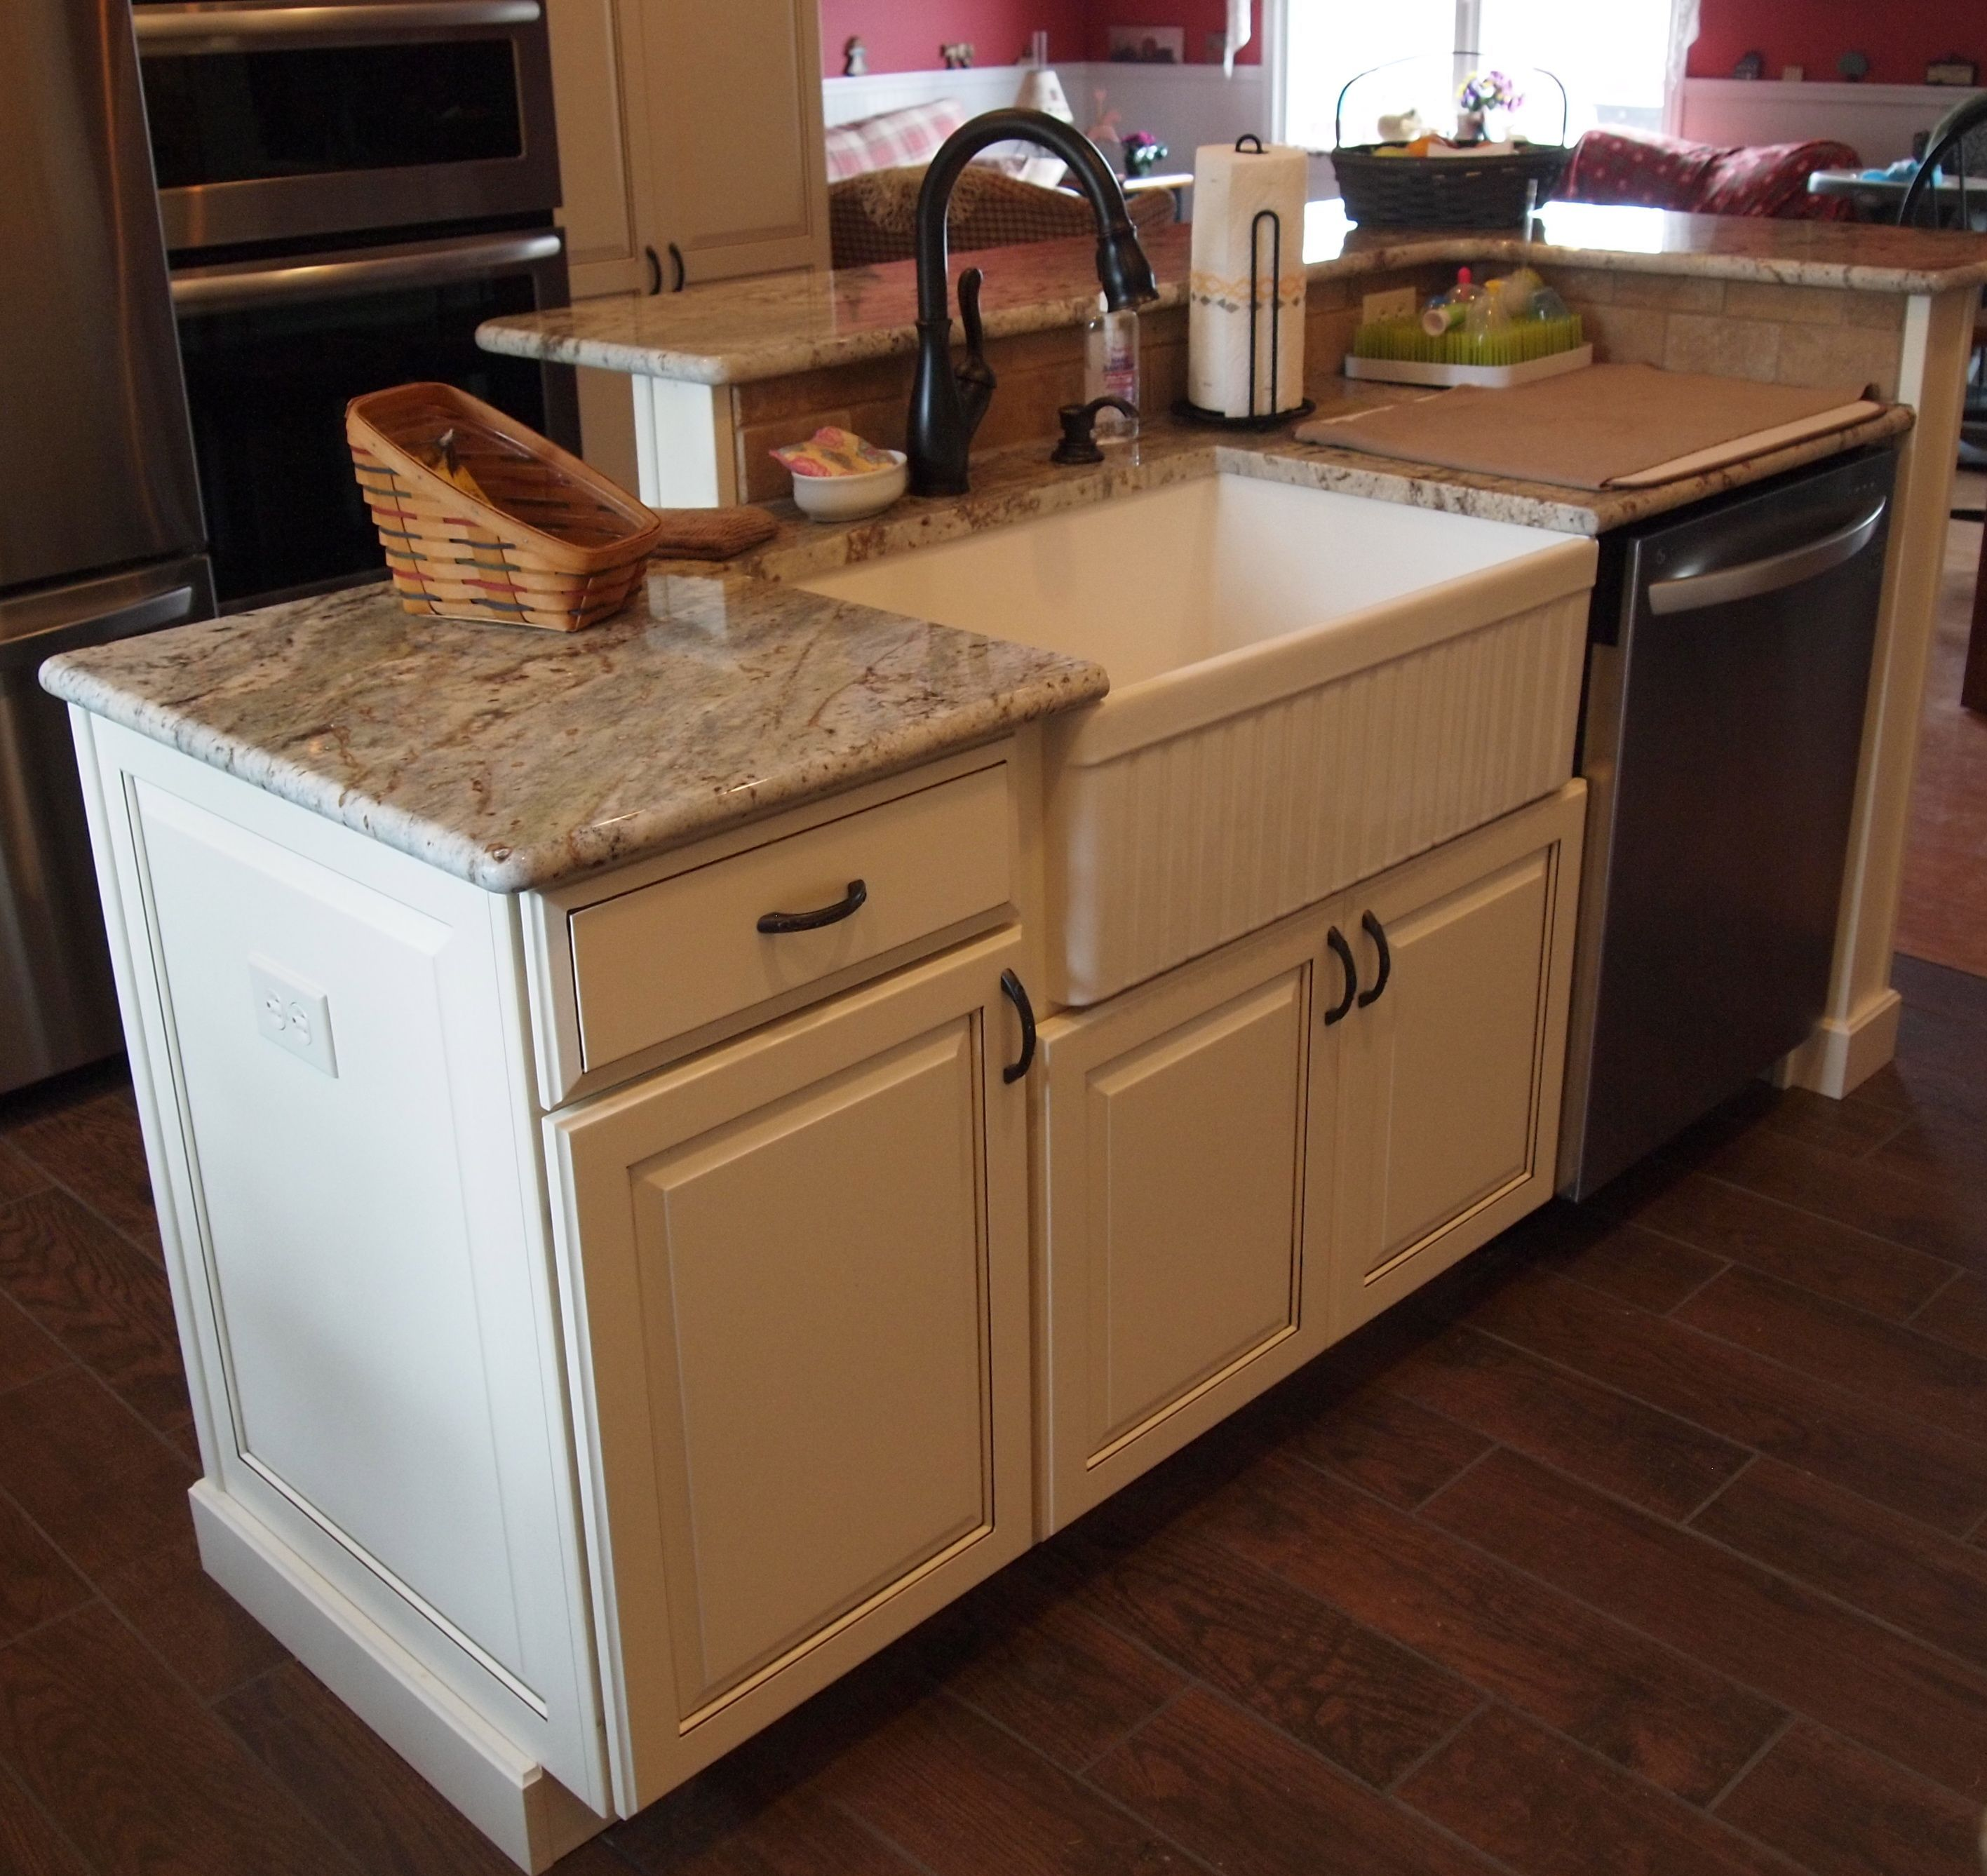 Stunning Kitchen Island With Sink And Dishwasher Ideas Kitchen Island With Sink Kitchen Island With Sink And Dishwasher Kitchen Sink Design